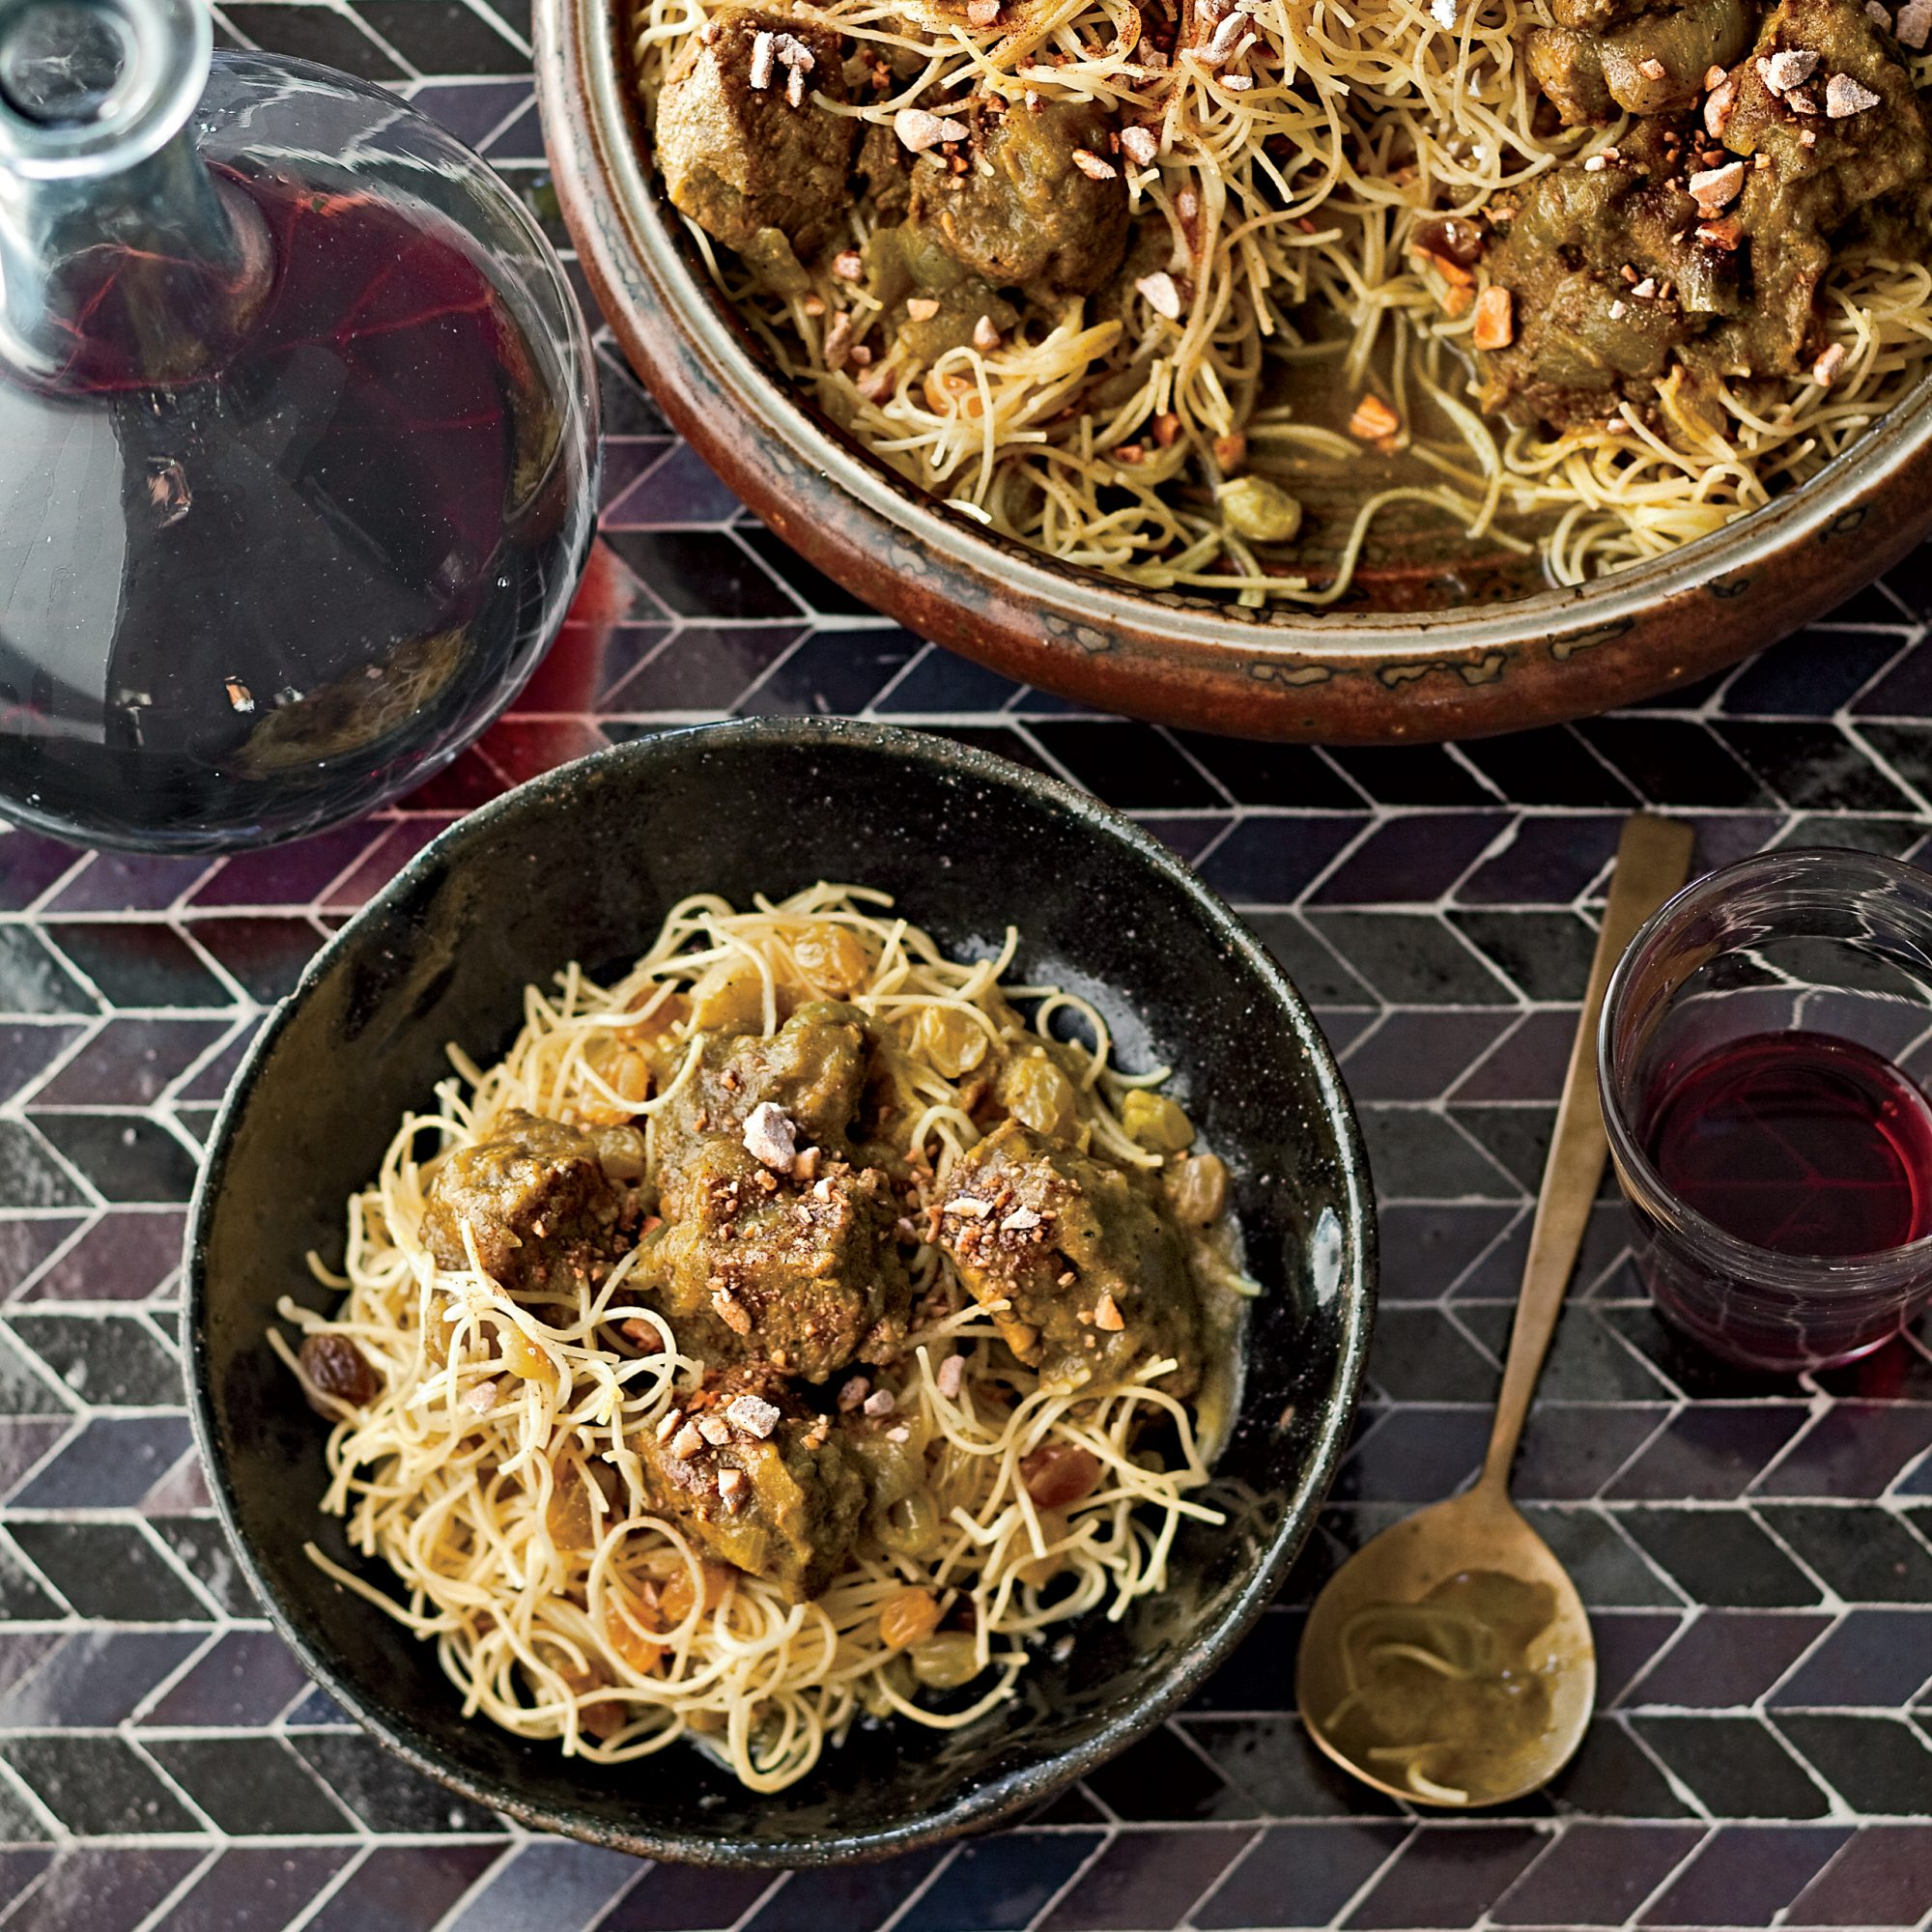 Moroccan Lamb Stew with Noodles